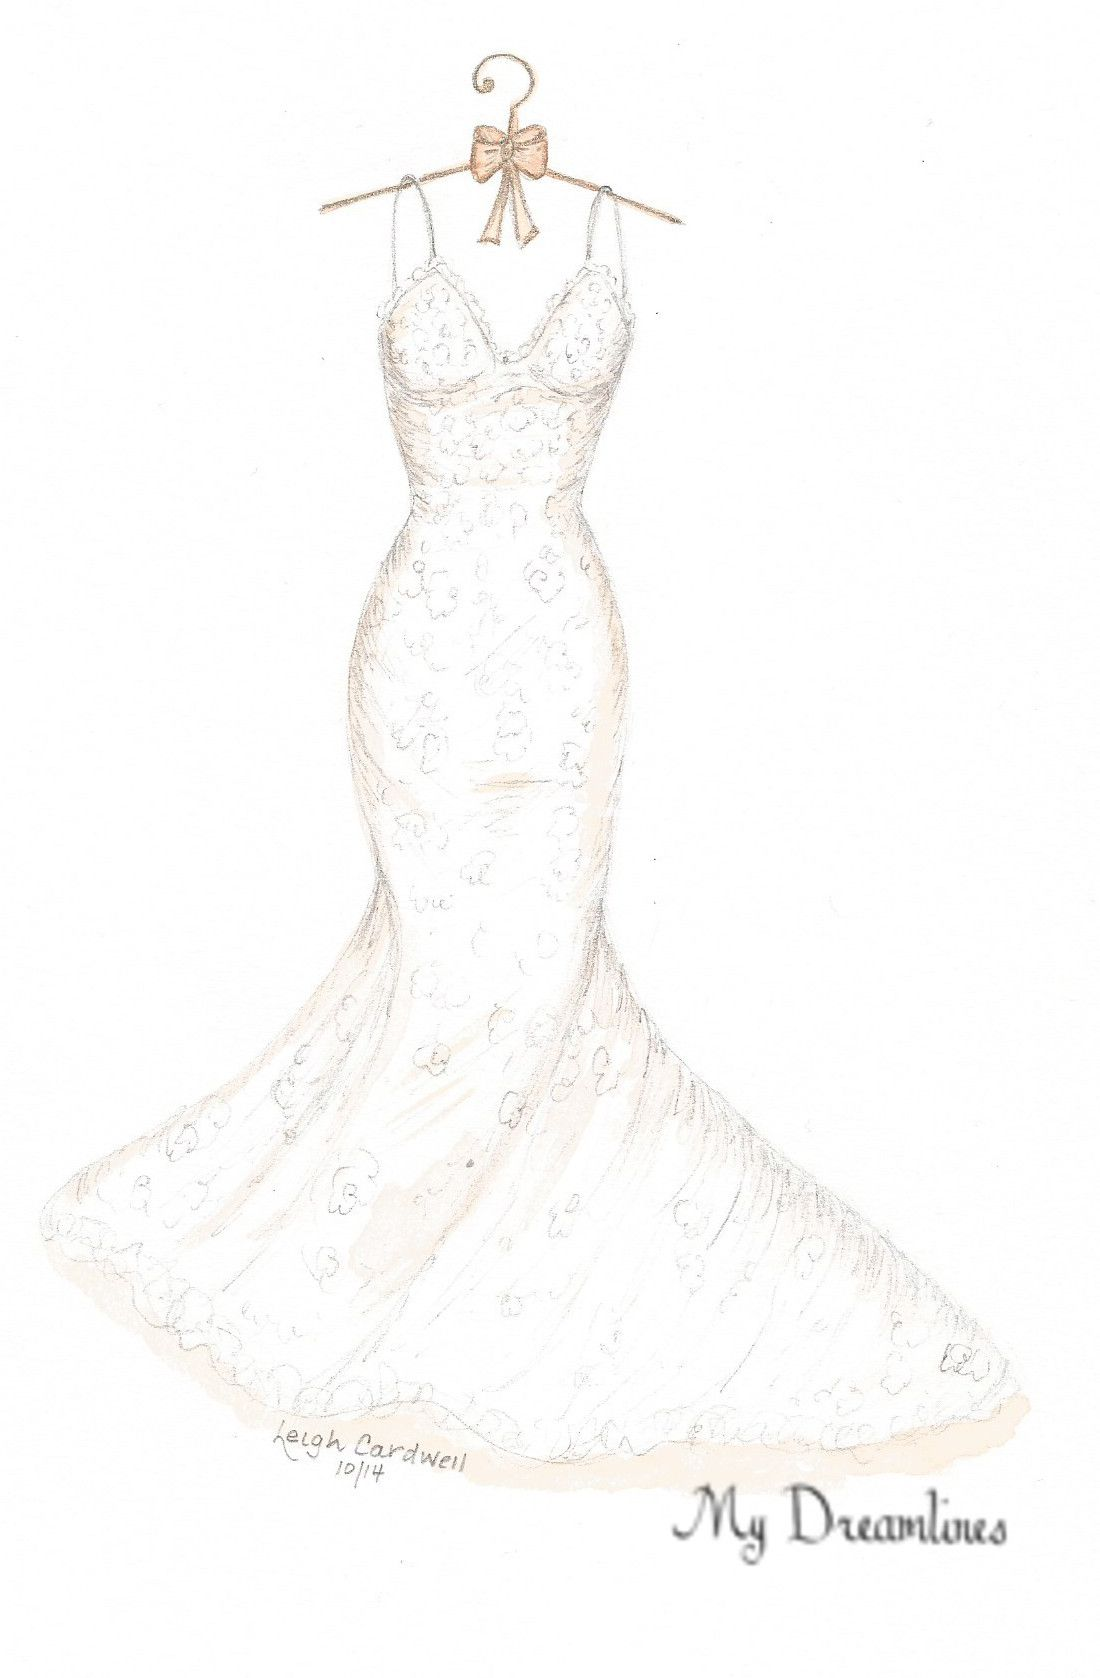 Wedding dress sketch for a paper one year anniversary gift or